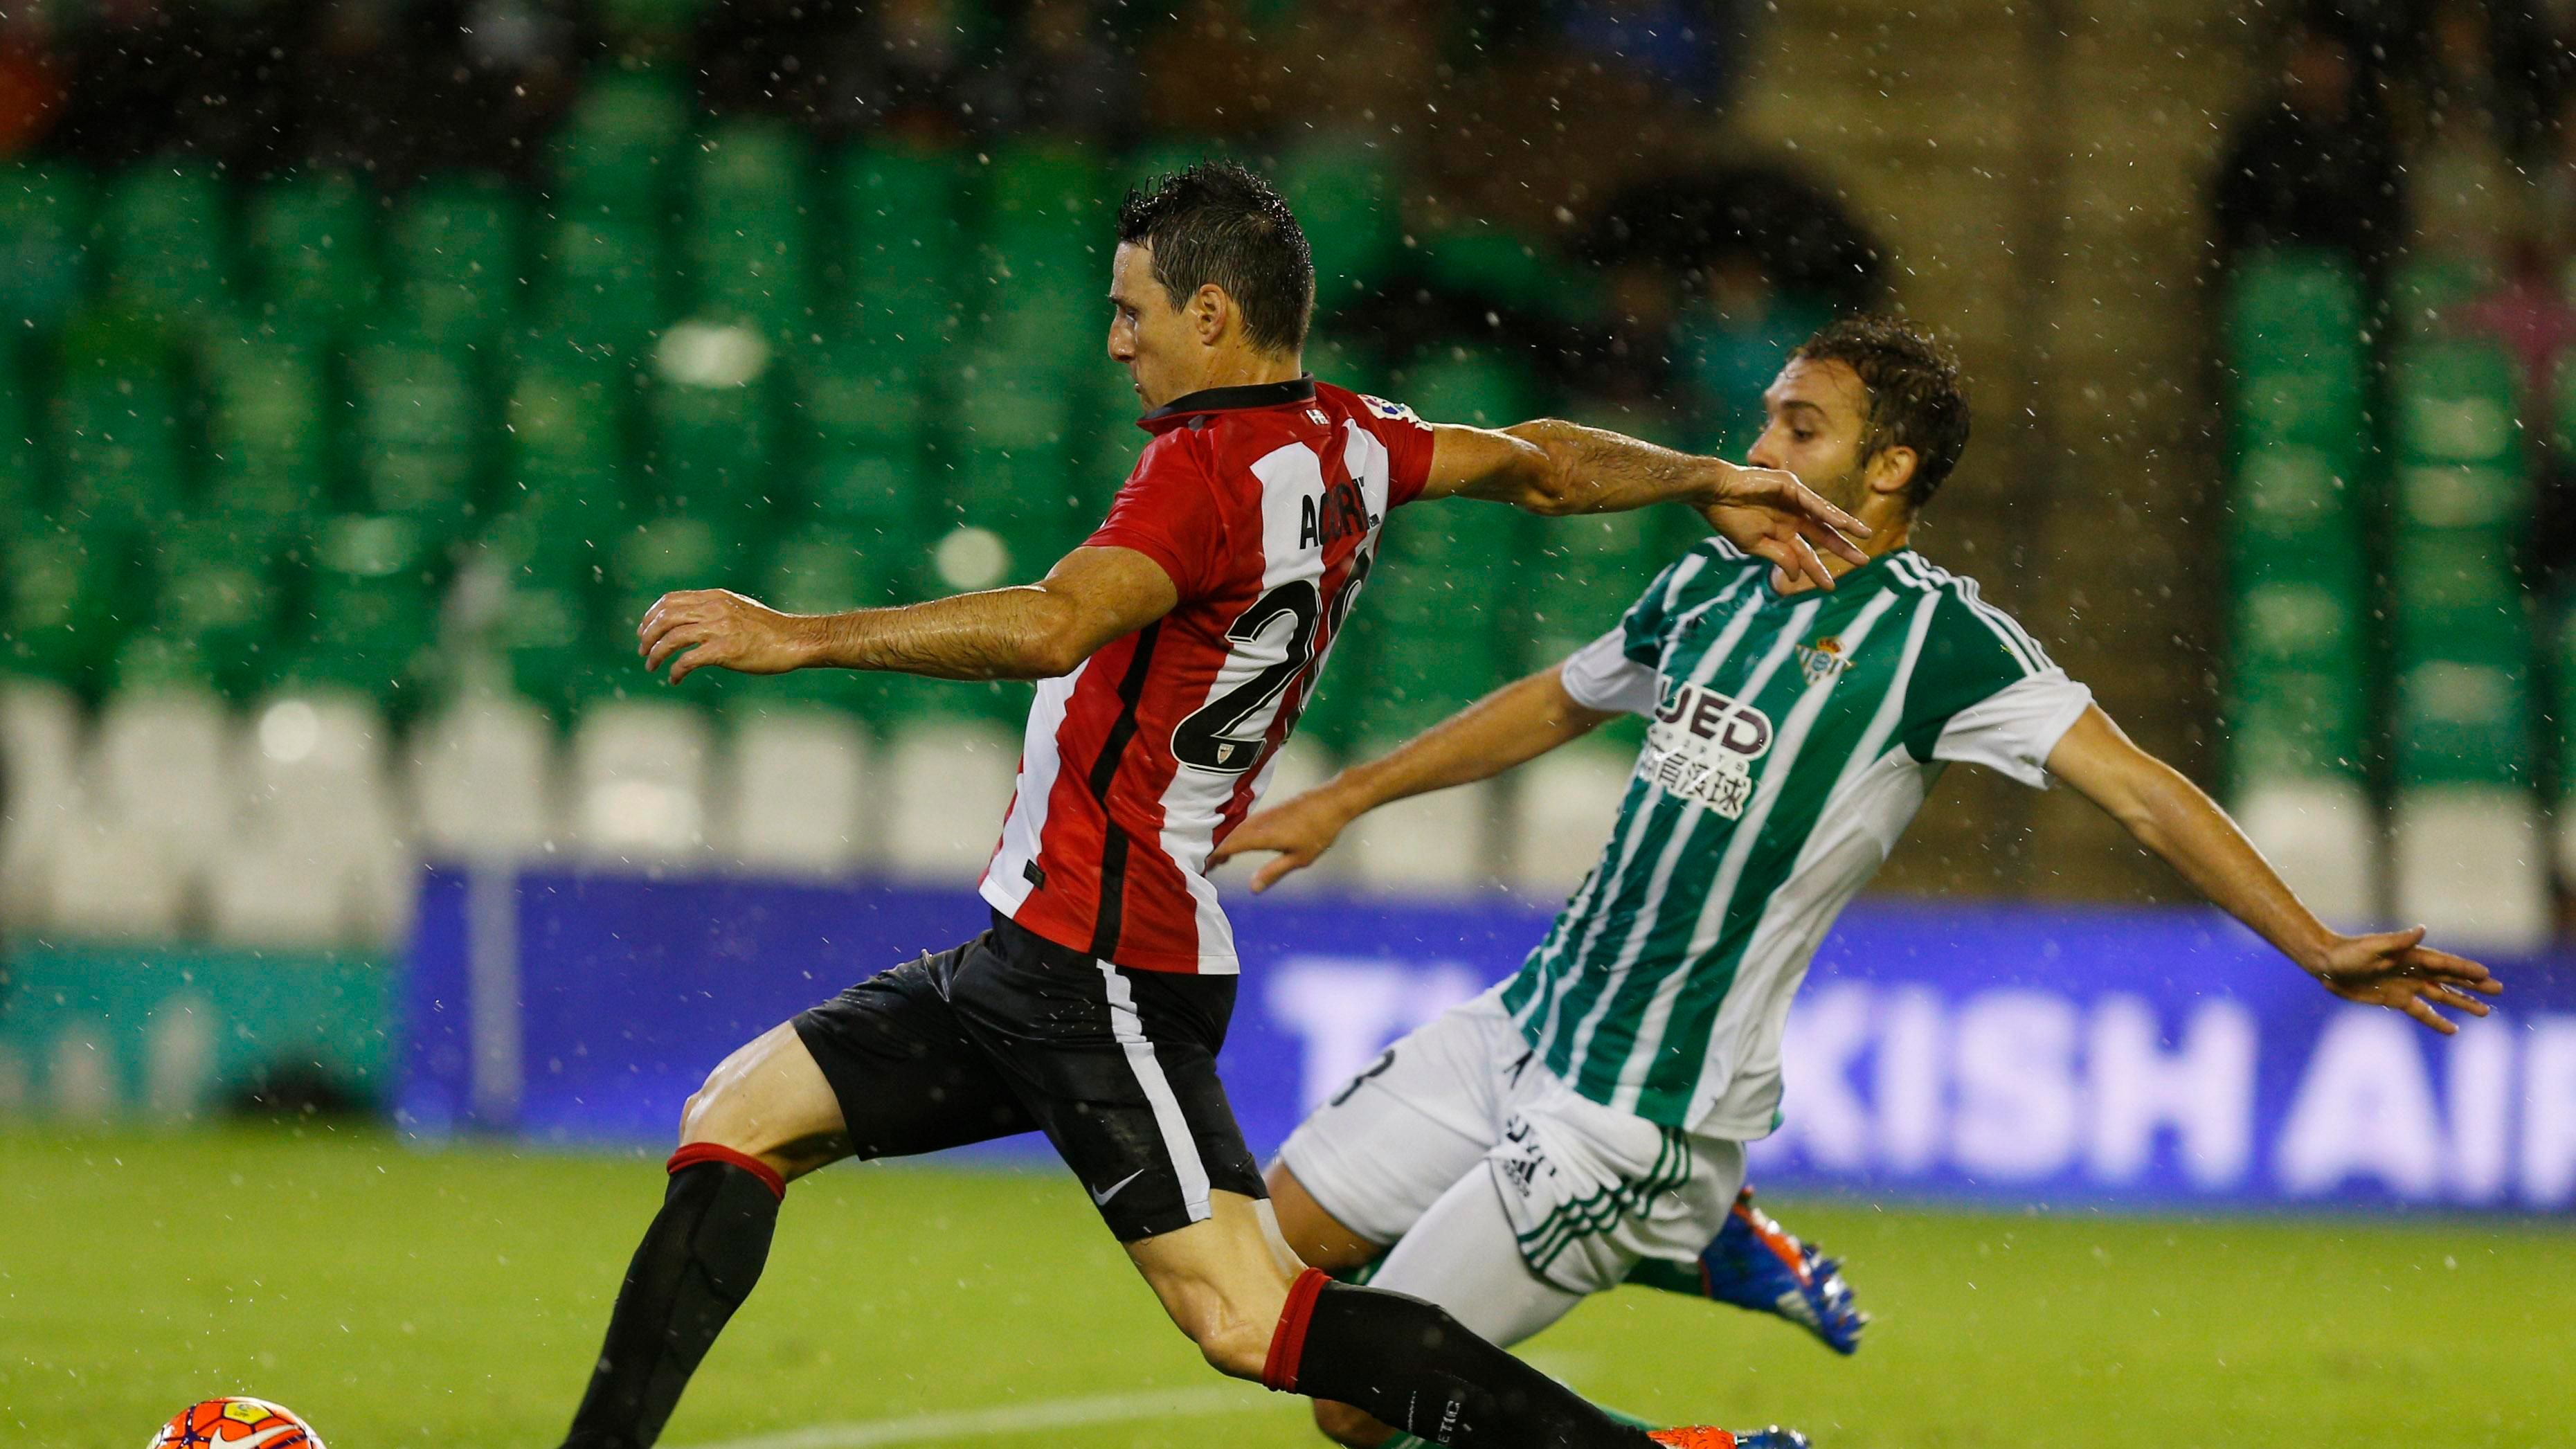 Partido Completo: Real Betis – Athletic Club (LaLiga 2015-16)